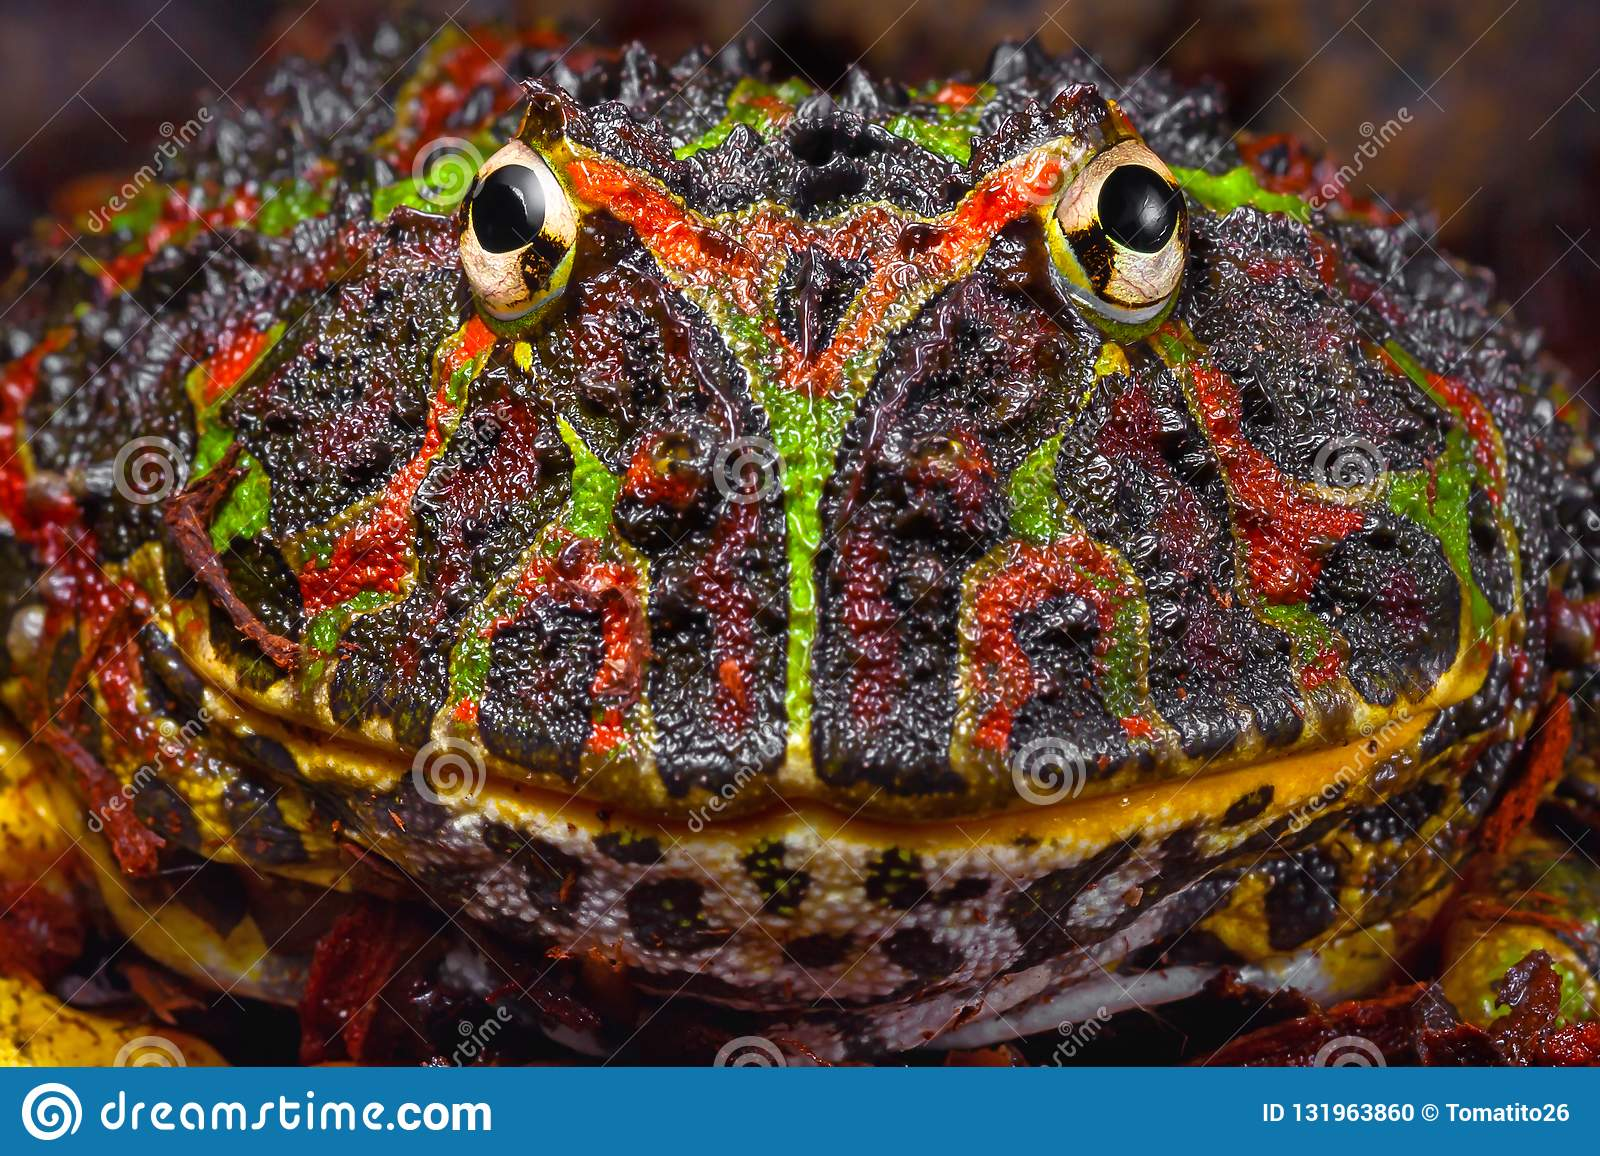 Large tropical frog portrait with interesting pattern